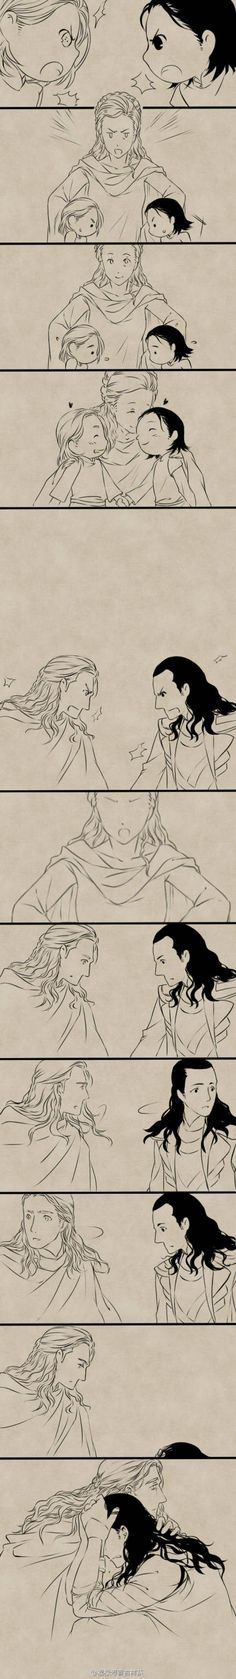 oh loki and thor